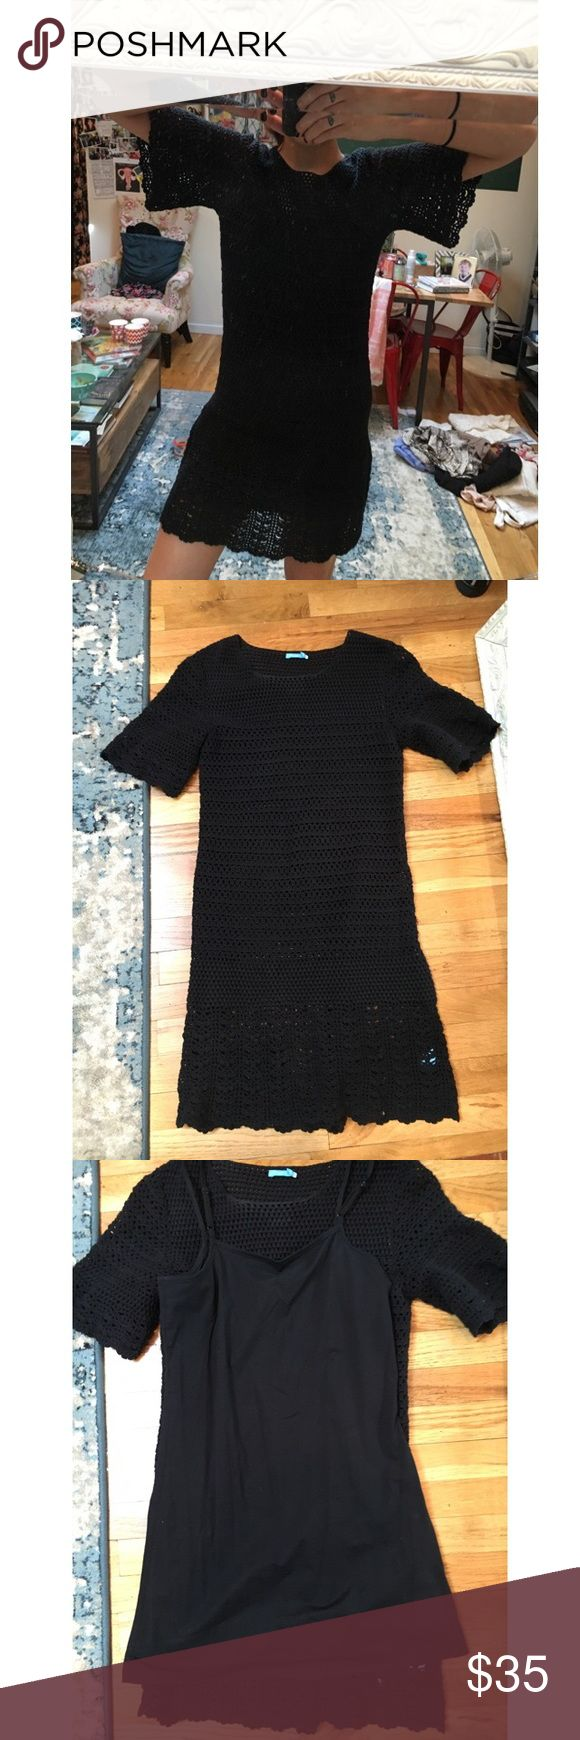 J. Maclaughlin black crochet short sleeve mini As seen in pictures. Comes with a slip, but looks super cool with a skirt slip and colorful bra. J. McLaughlin Dresses Mini